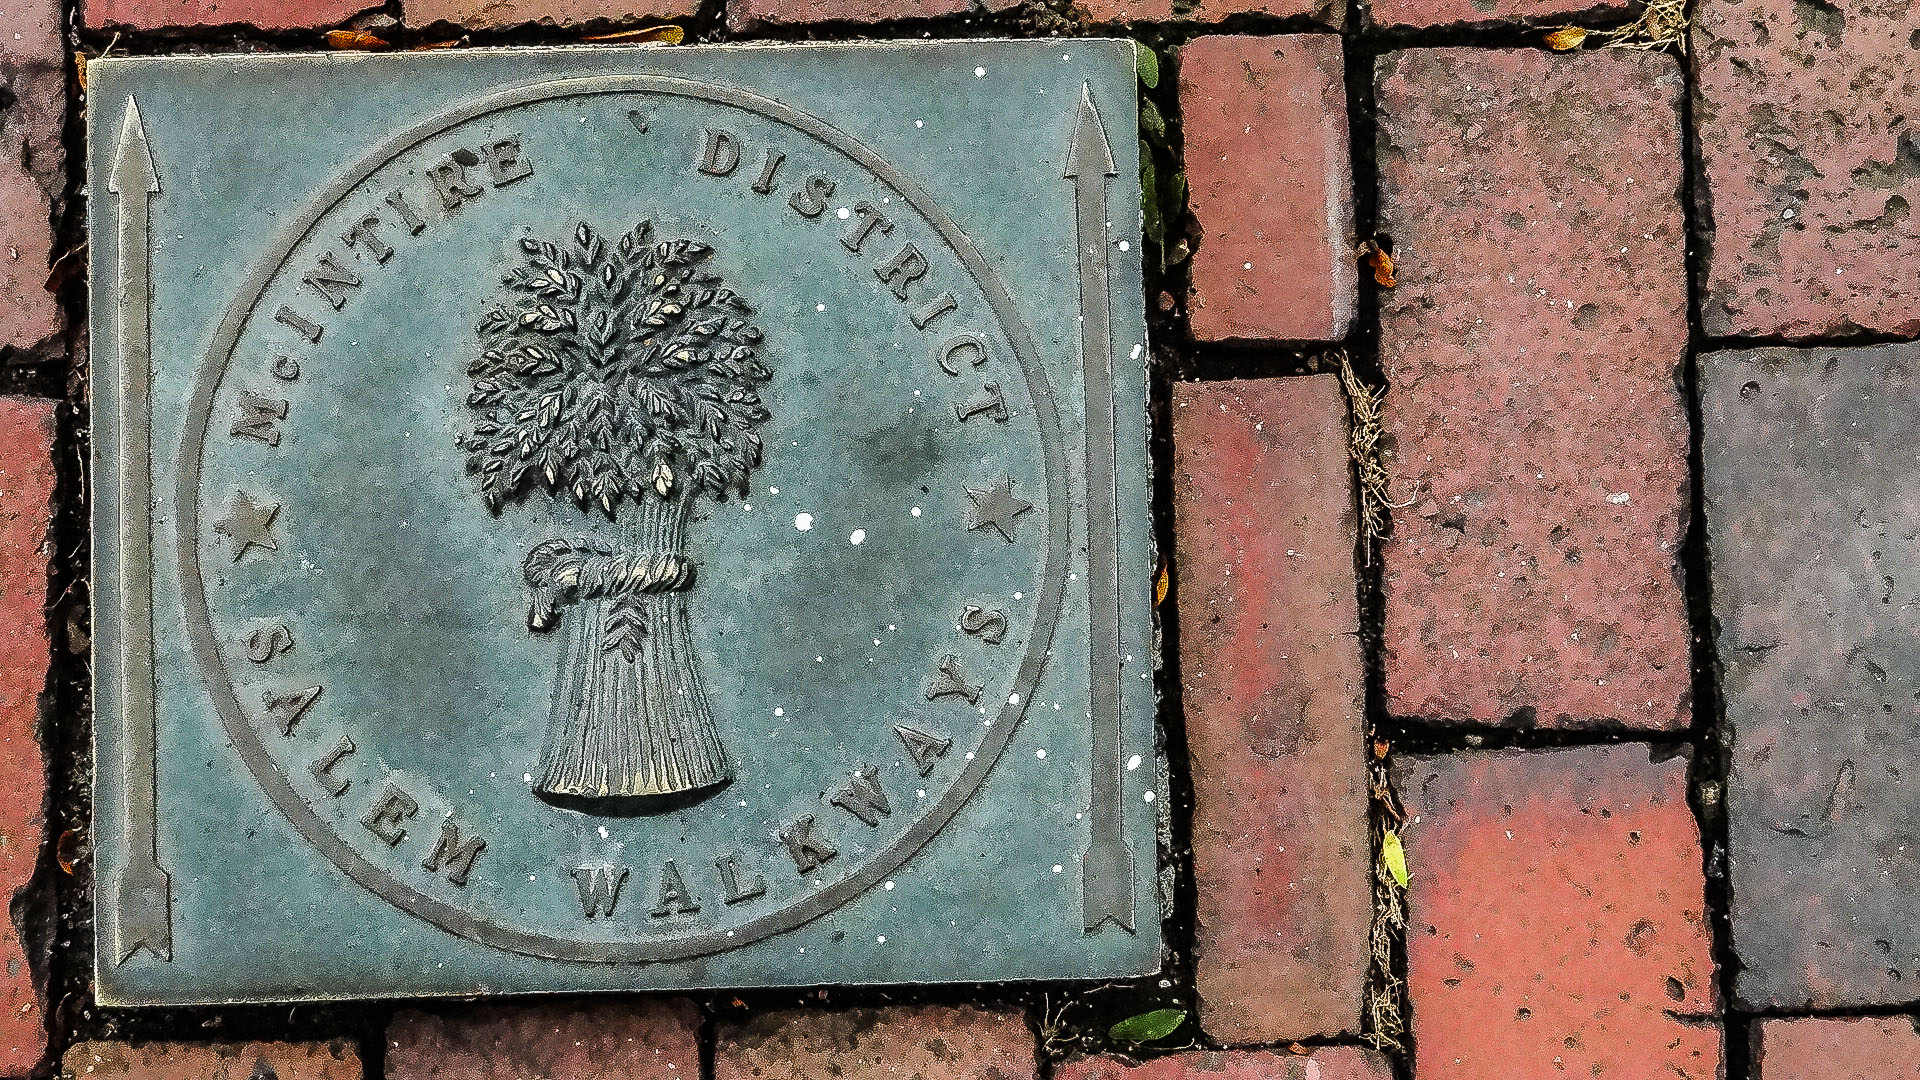 Ground Plaque in the historic McIntire District